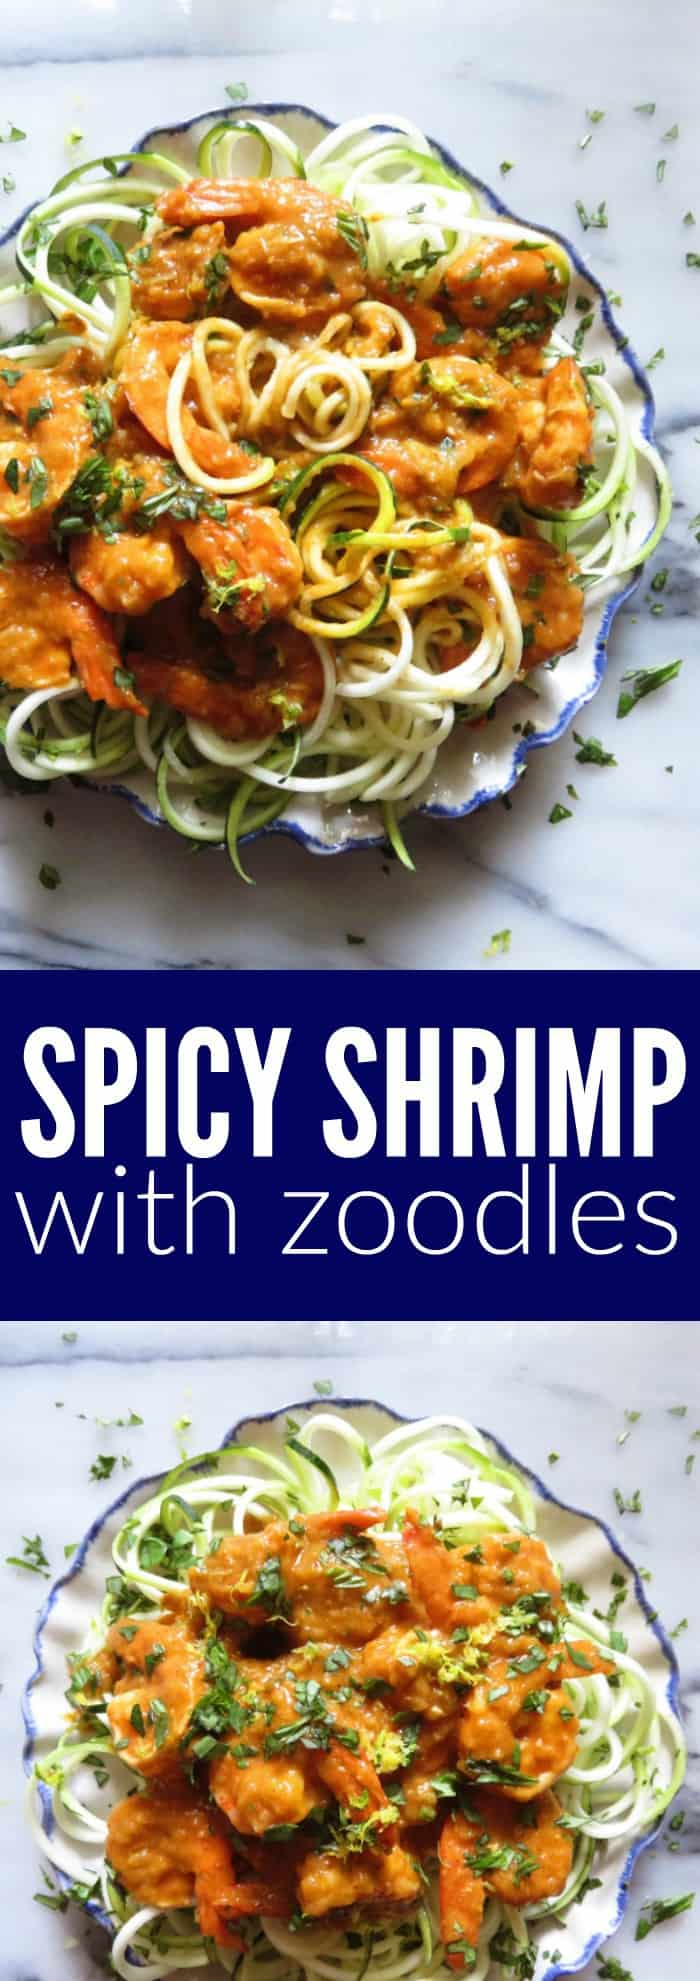 LOVE this spicy shrimp + zoodles recipe for all my party people who love some spice! It's sooo tasty and makes for a delicious low carb + paleo meal! thetoastedpinenut.com